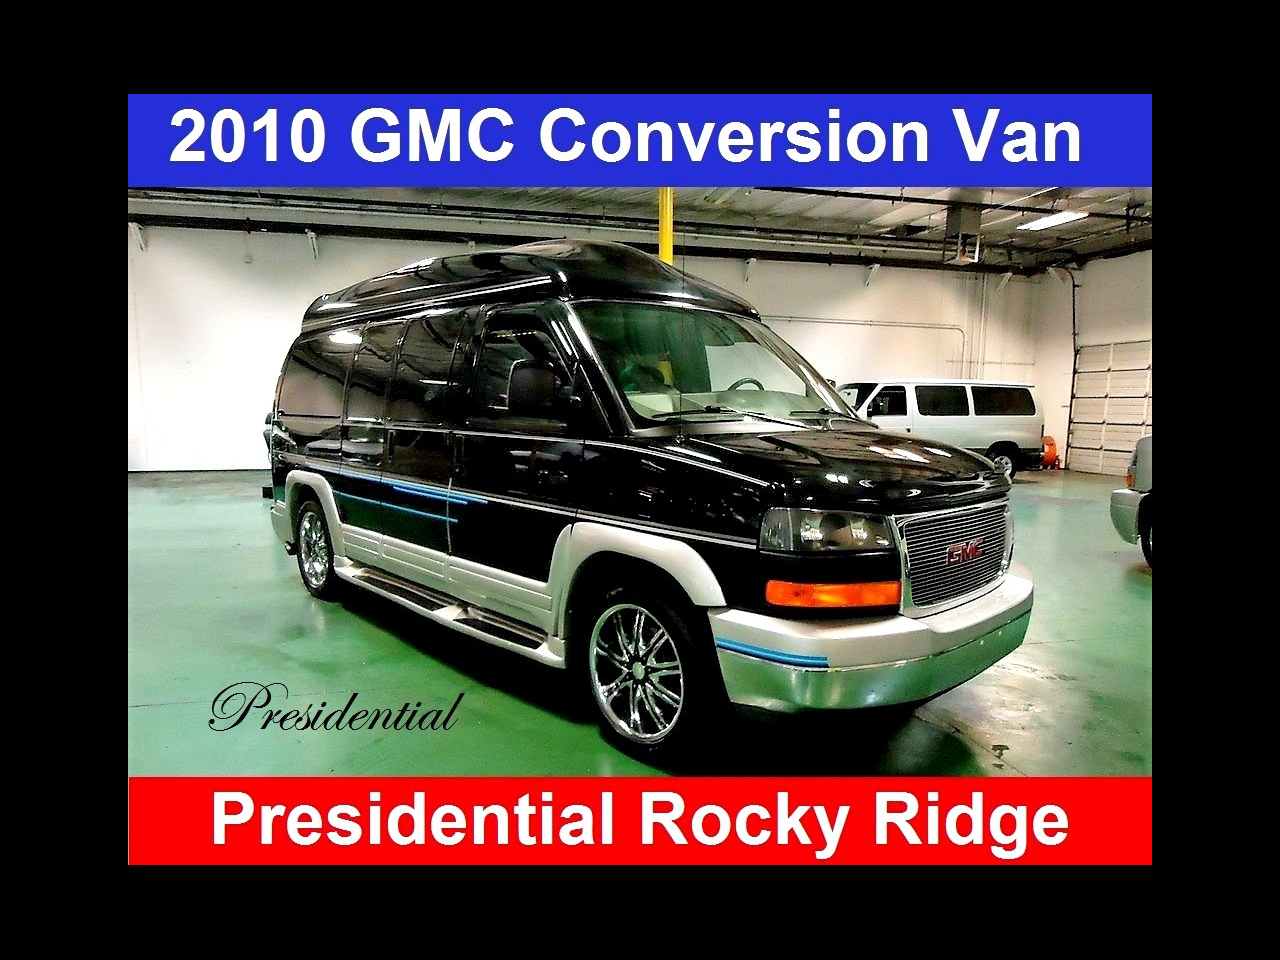 2010 GMC Conversion Van Presidential Rocky Ridge Conversion Van